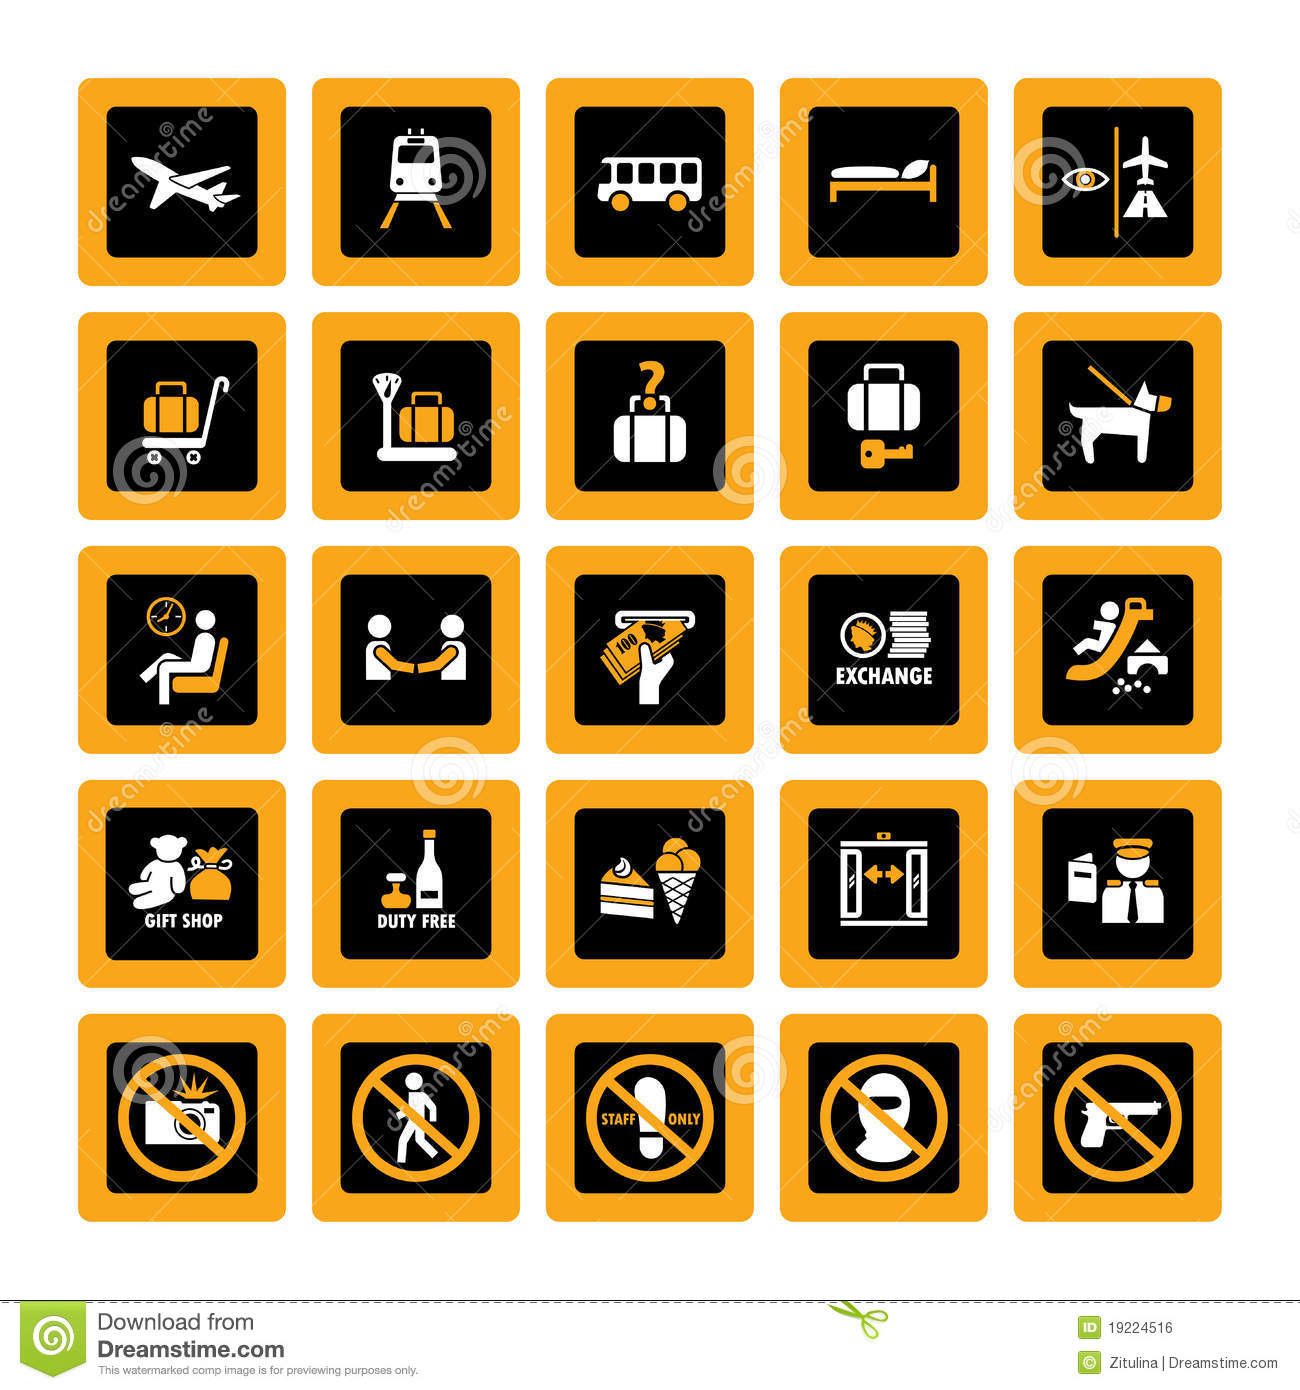 Airport Pictograms Inverse Royalty Free Stock Image